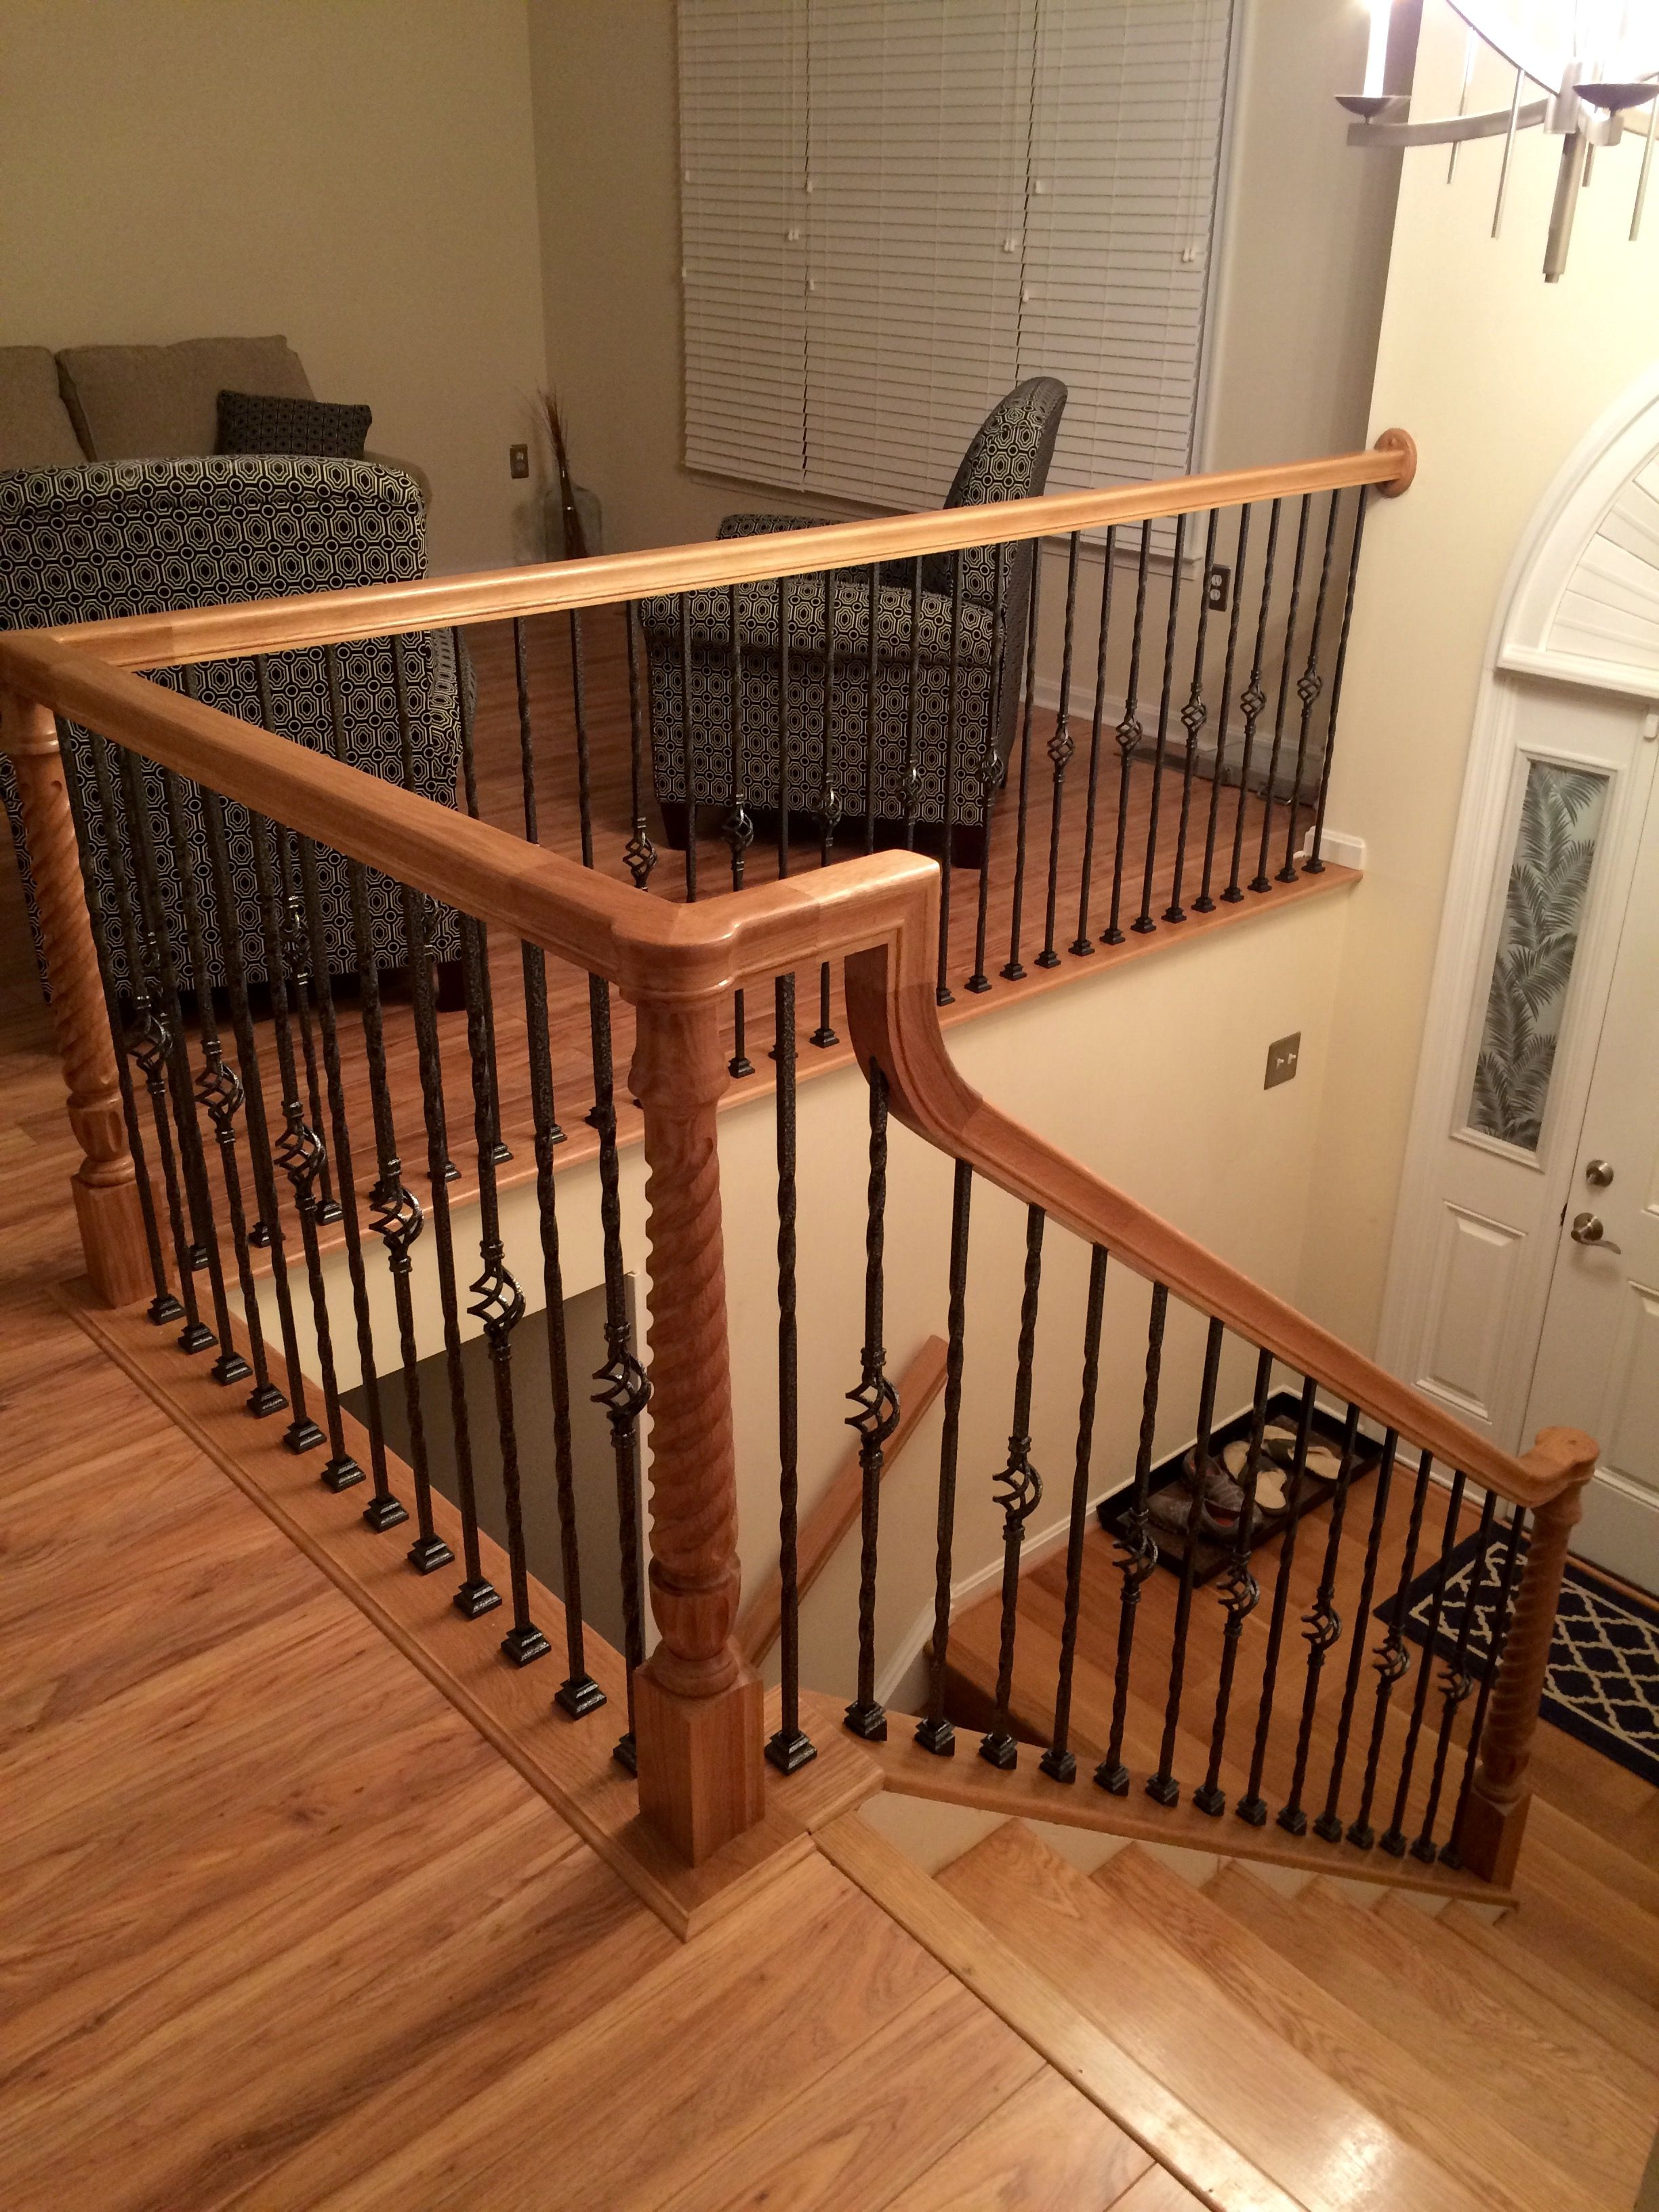 Virginia Stair Builder. Custom Stairs. White Oak Stairs With Black And  Silver Hammered Iron Twist Balusters. Stairways By Clarence Rogers,  Fredericksburg, ...